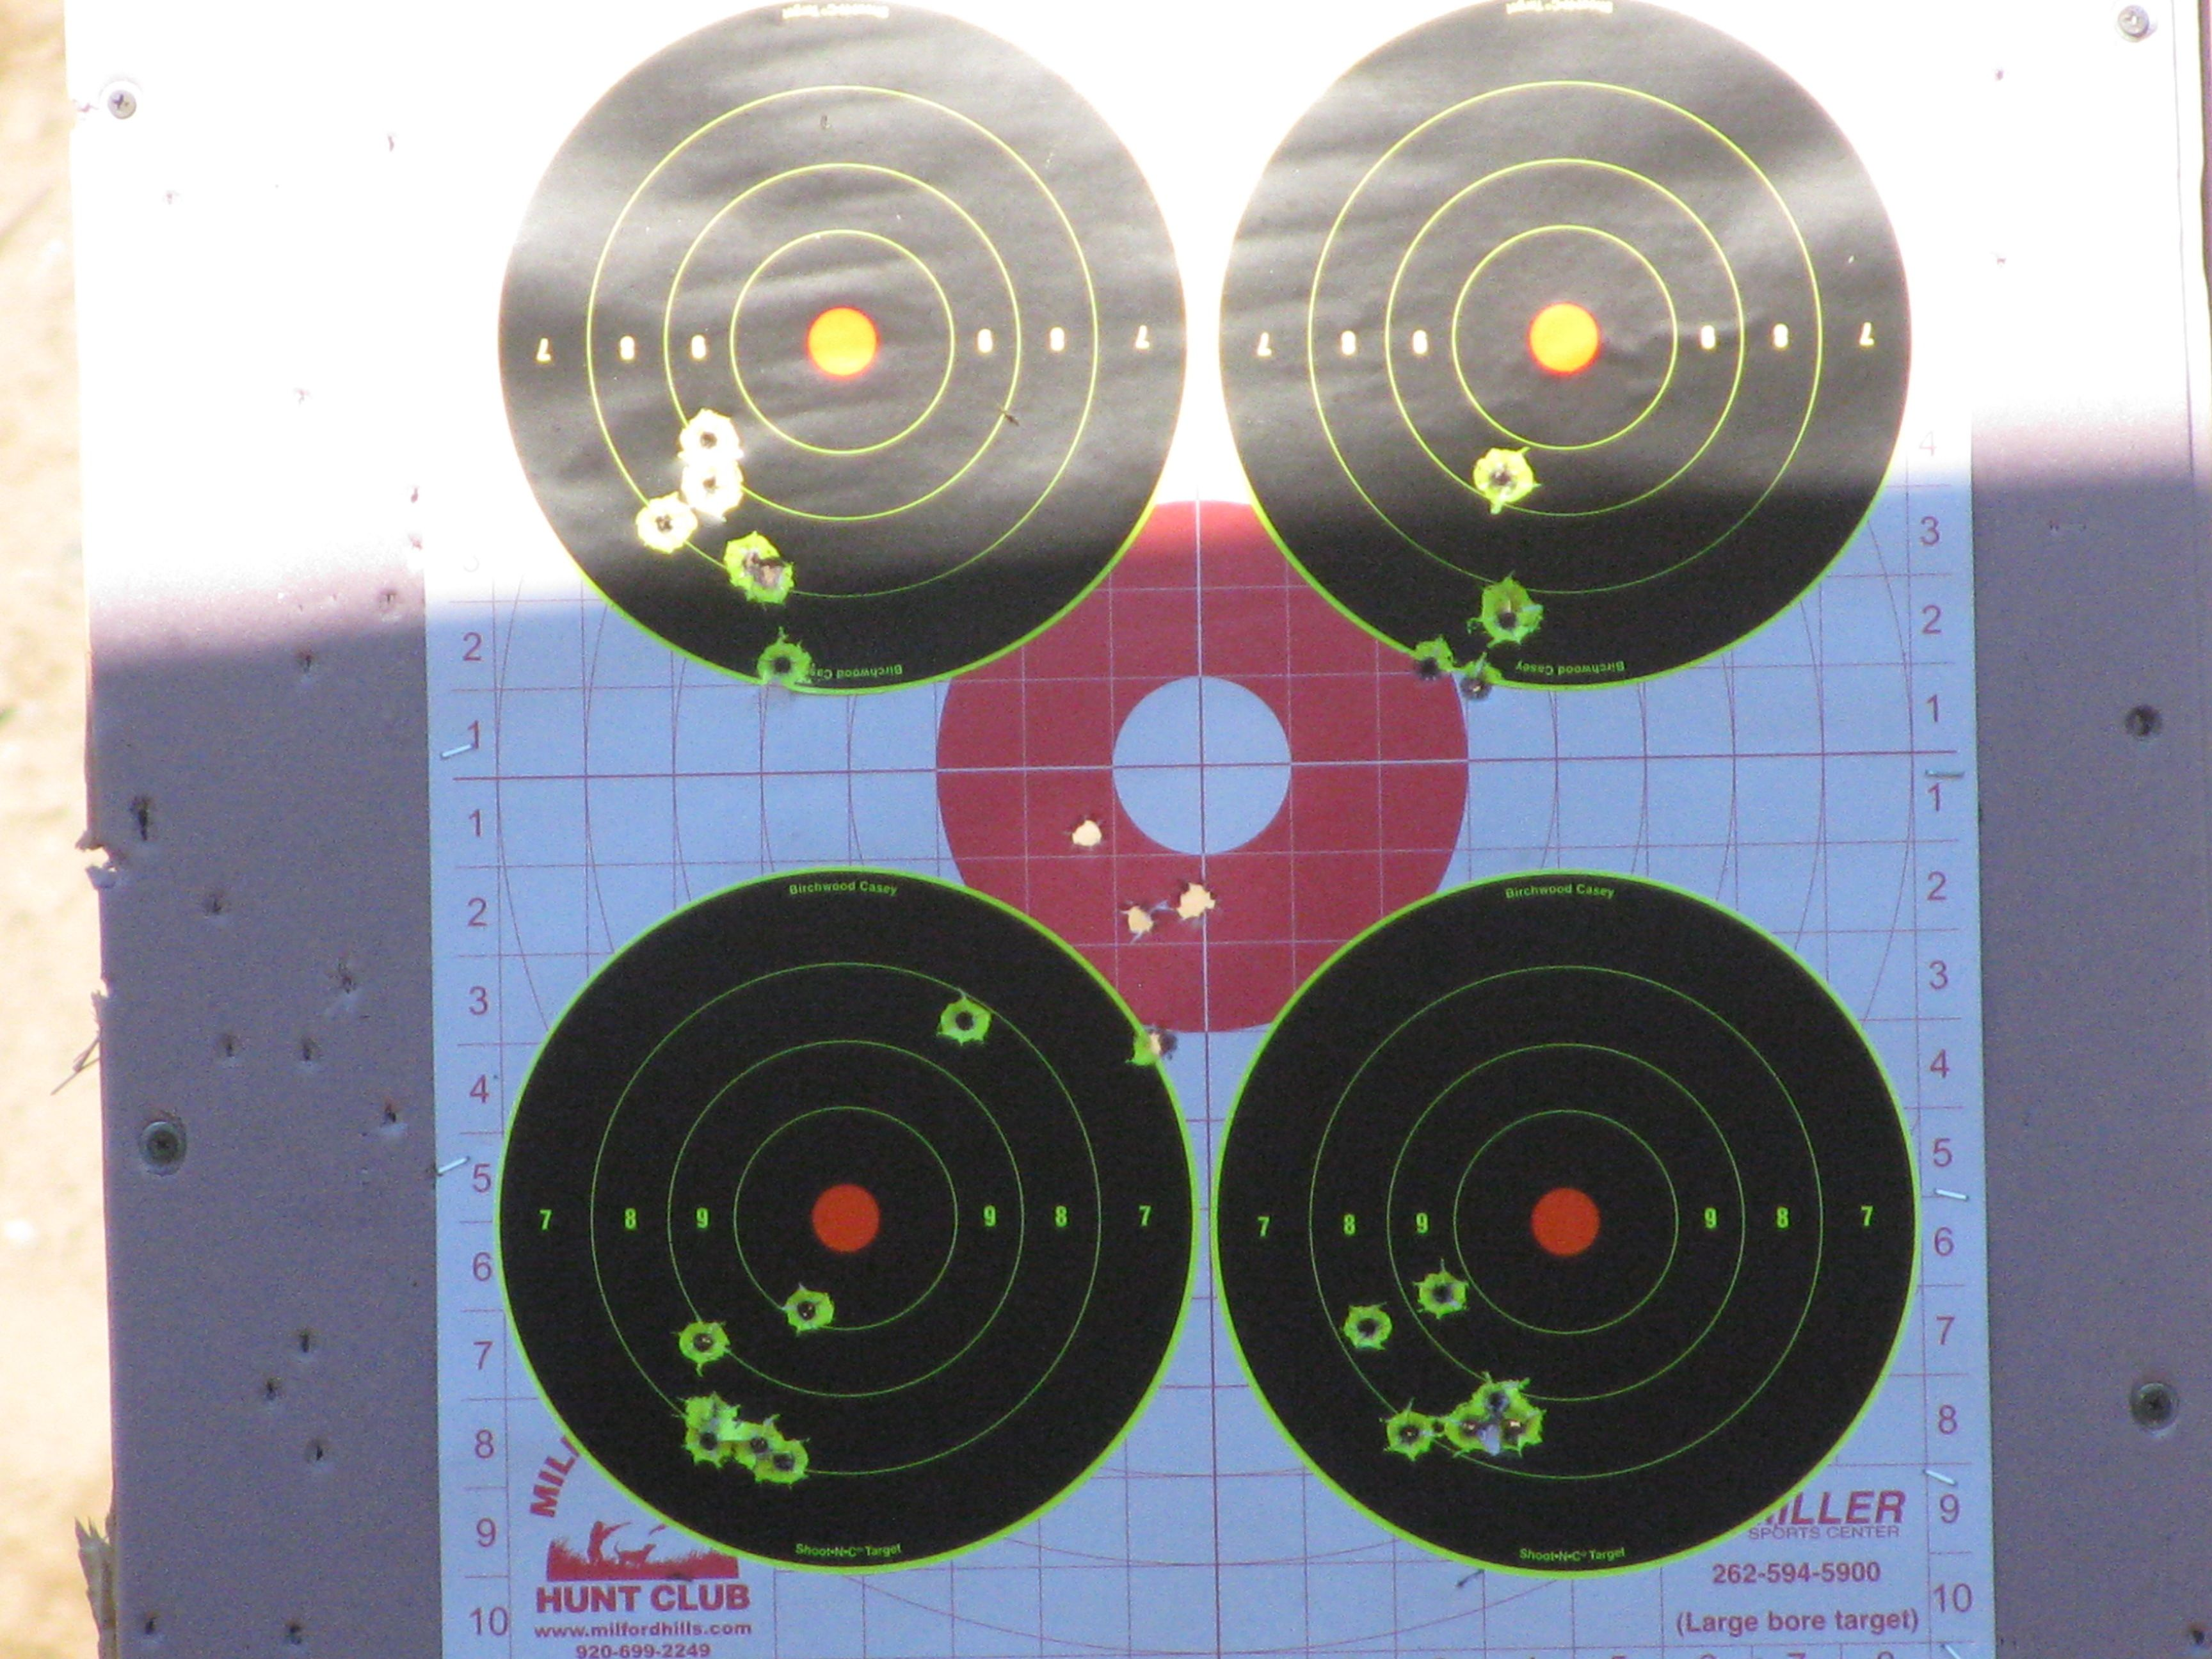 Wife's new savage ruger 44 carbine and vaquero's - Range Report